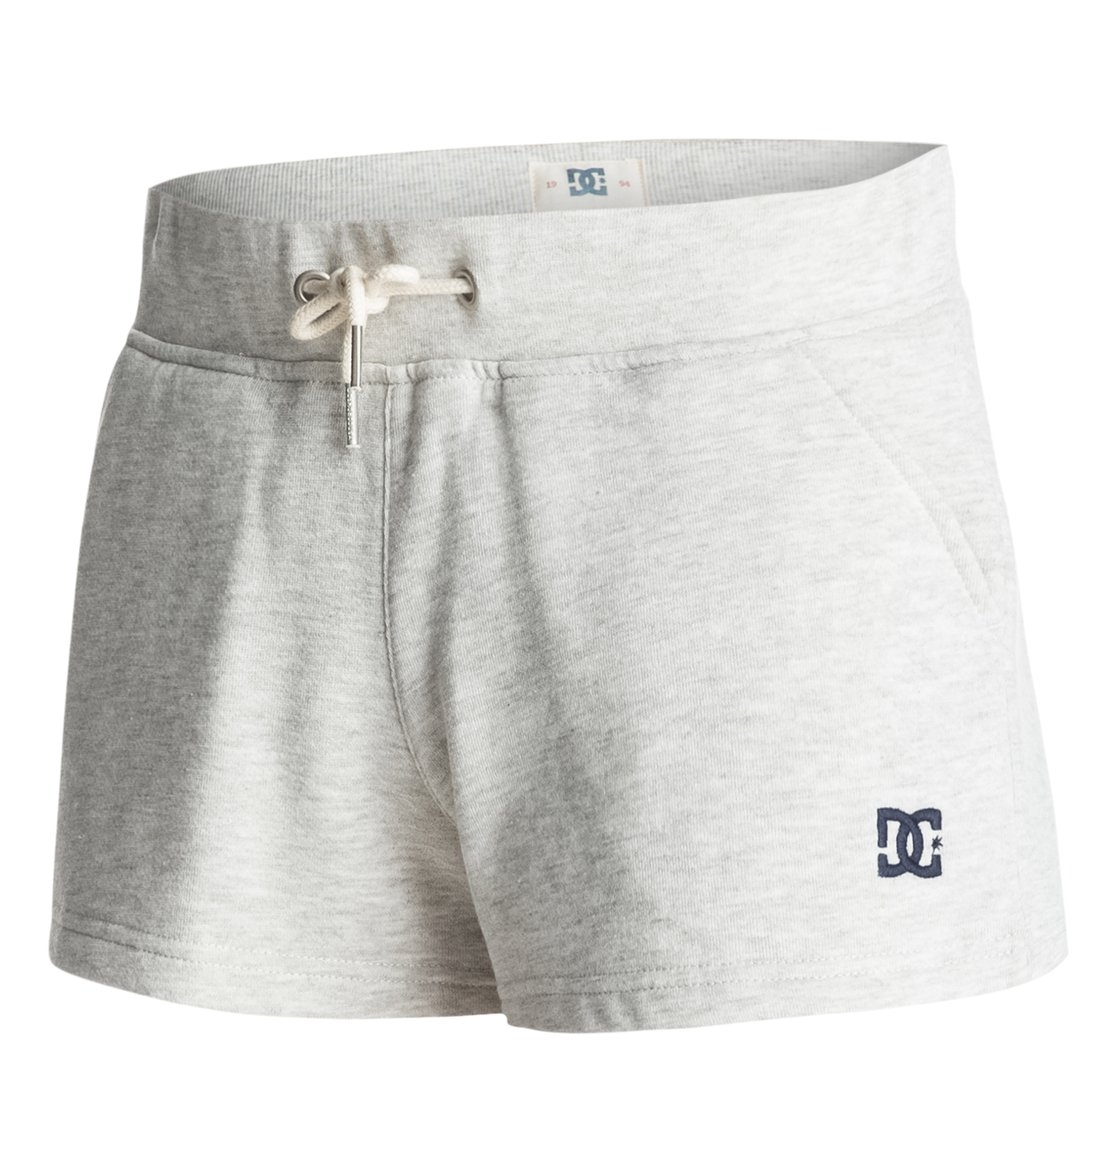 Rebel Star - Shorts - Dcshoes<br>